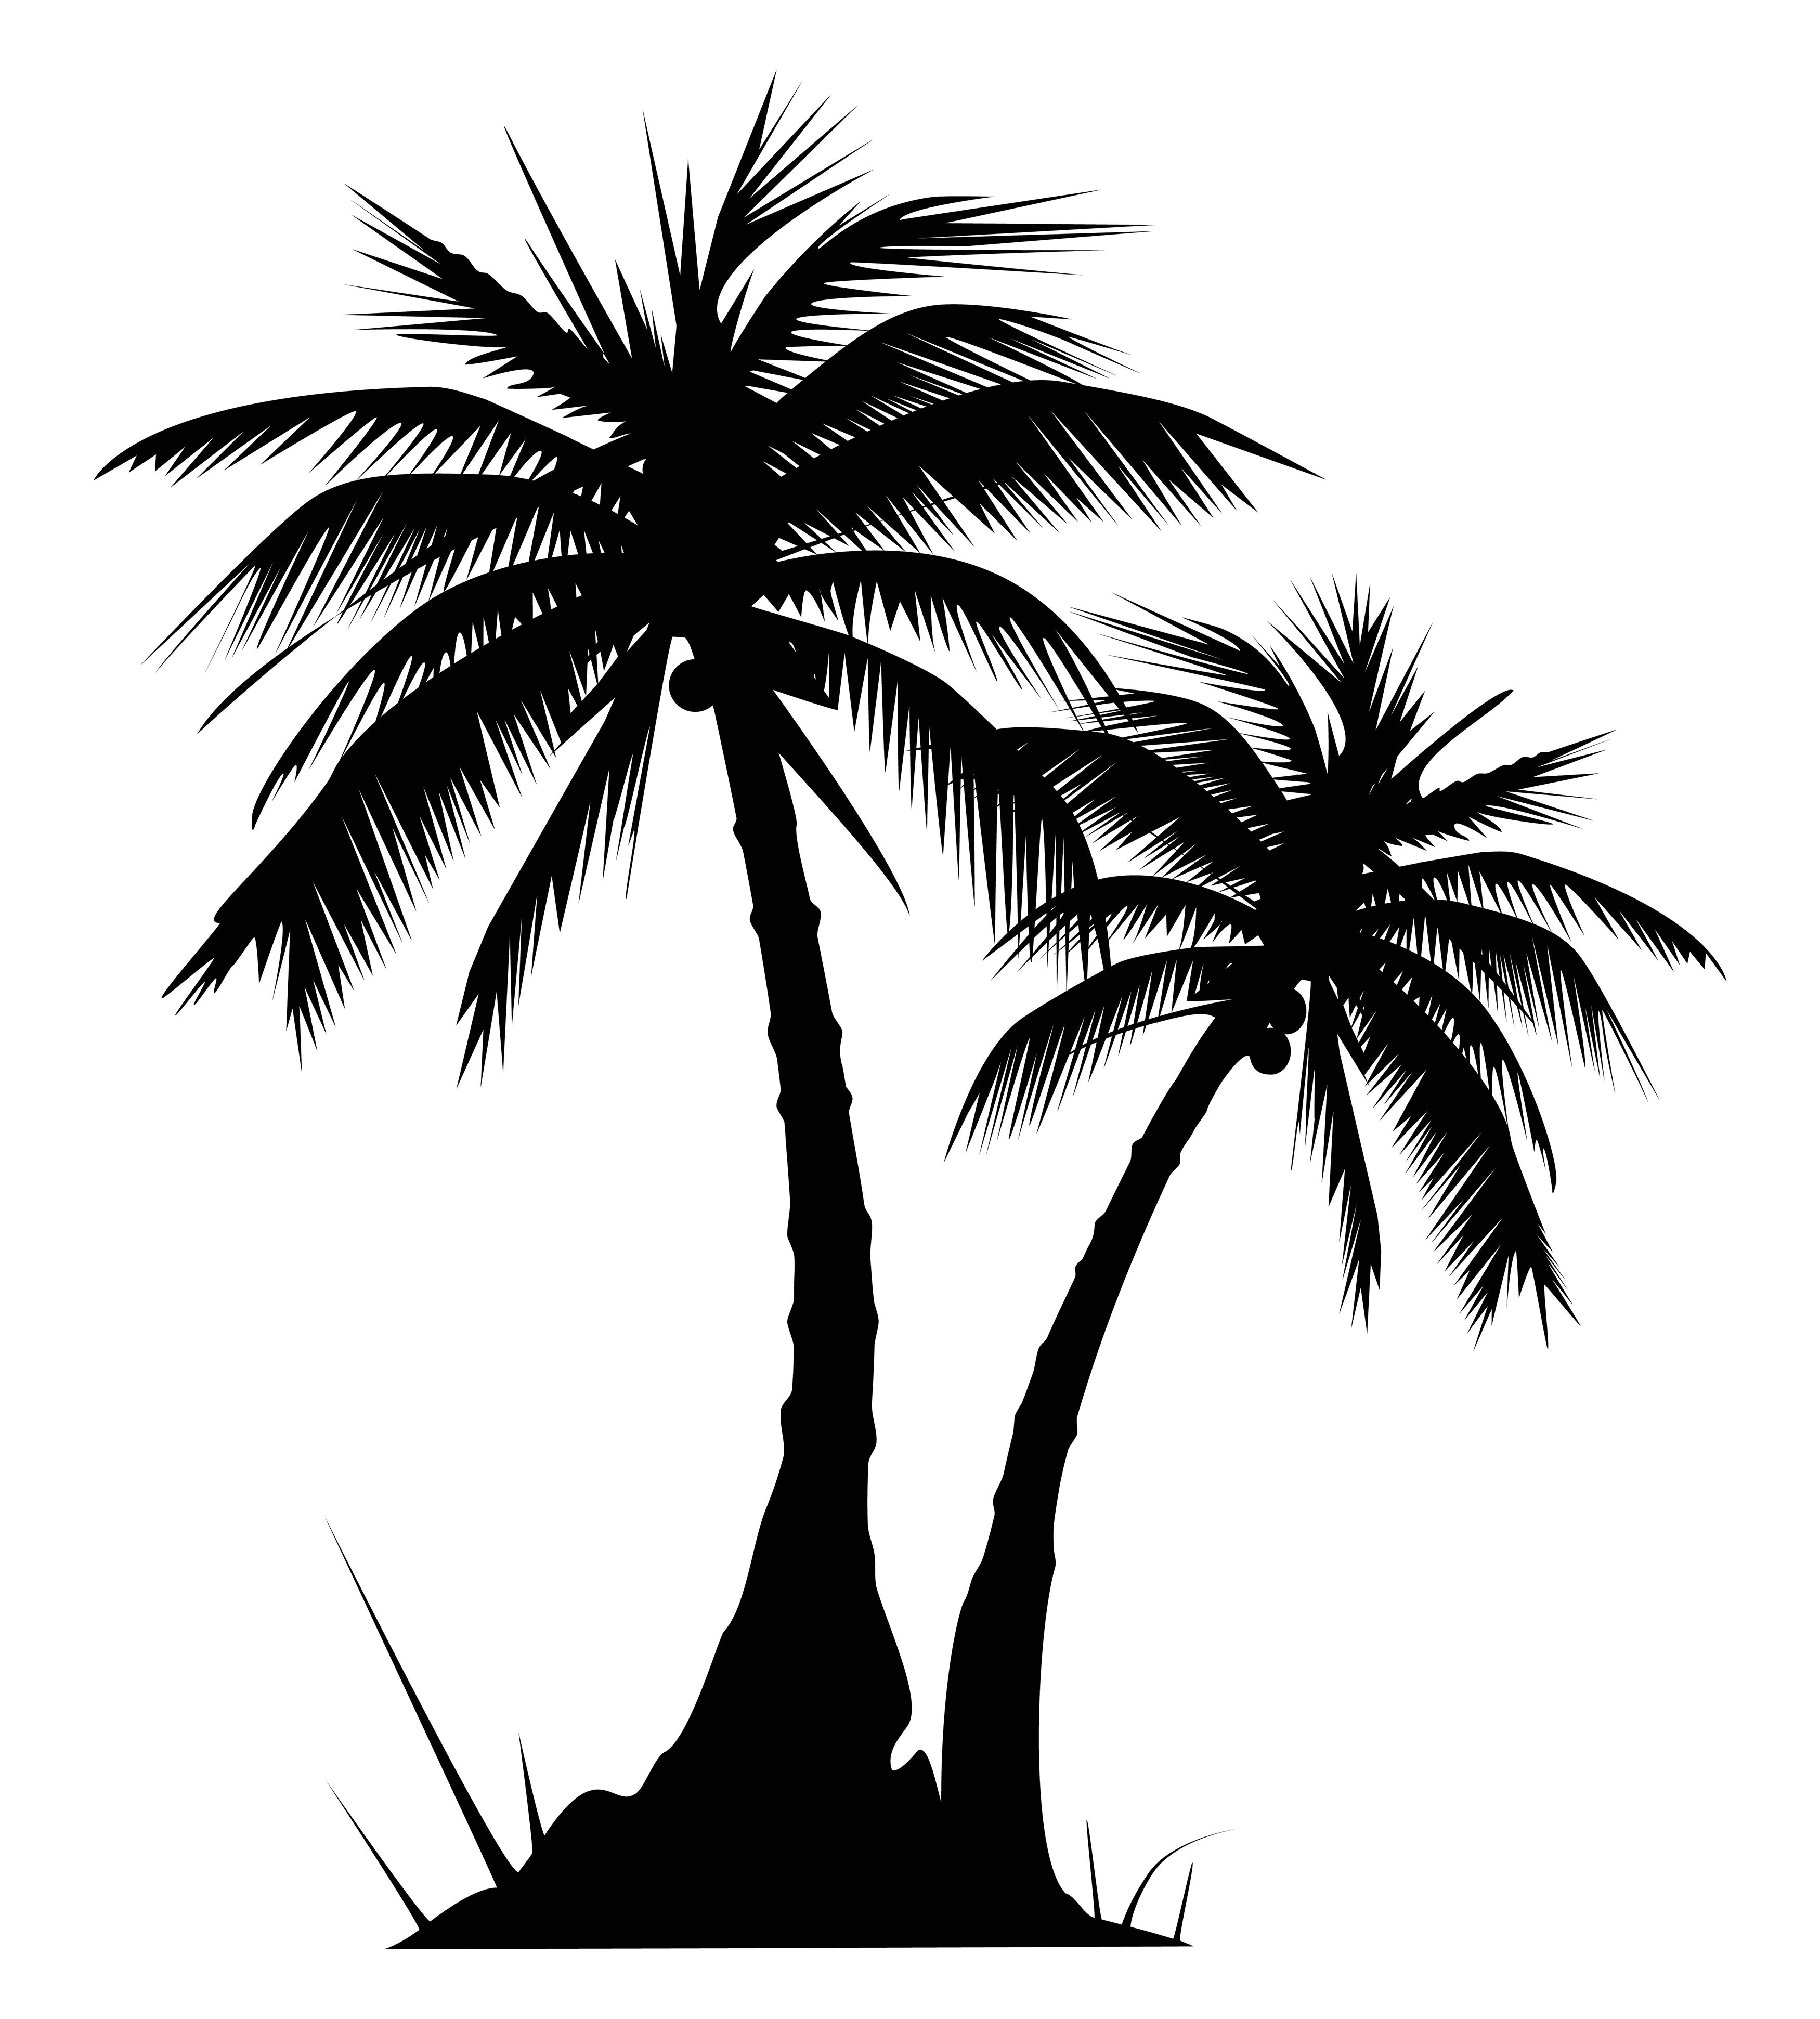 Clipart palm tree beach black and white image download palm tree clip art black and white Quotes | Cric explore | Palm tree ... image download